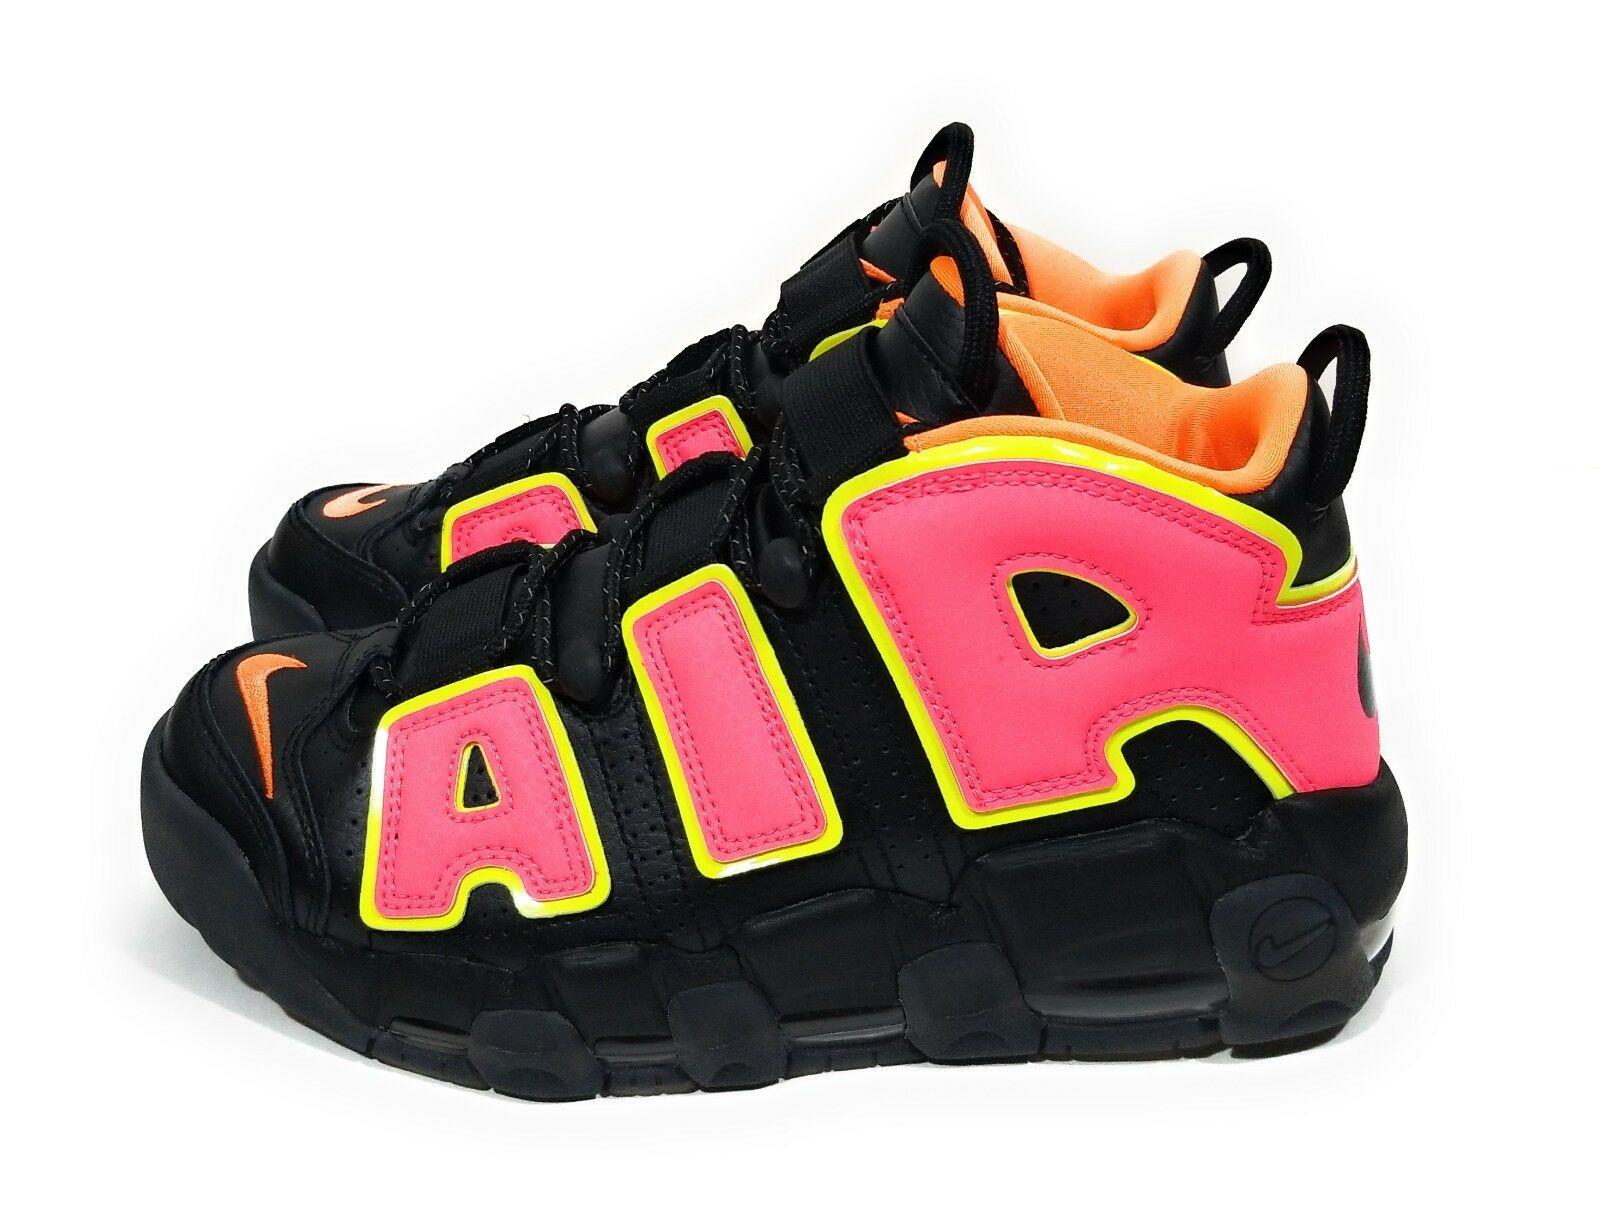 Nike Air More Uptempo Hot Punch Womens Basketball shoes Pink Black Size 7.5